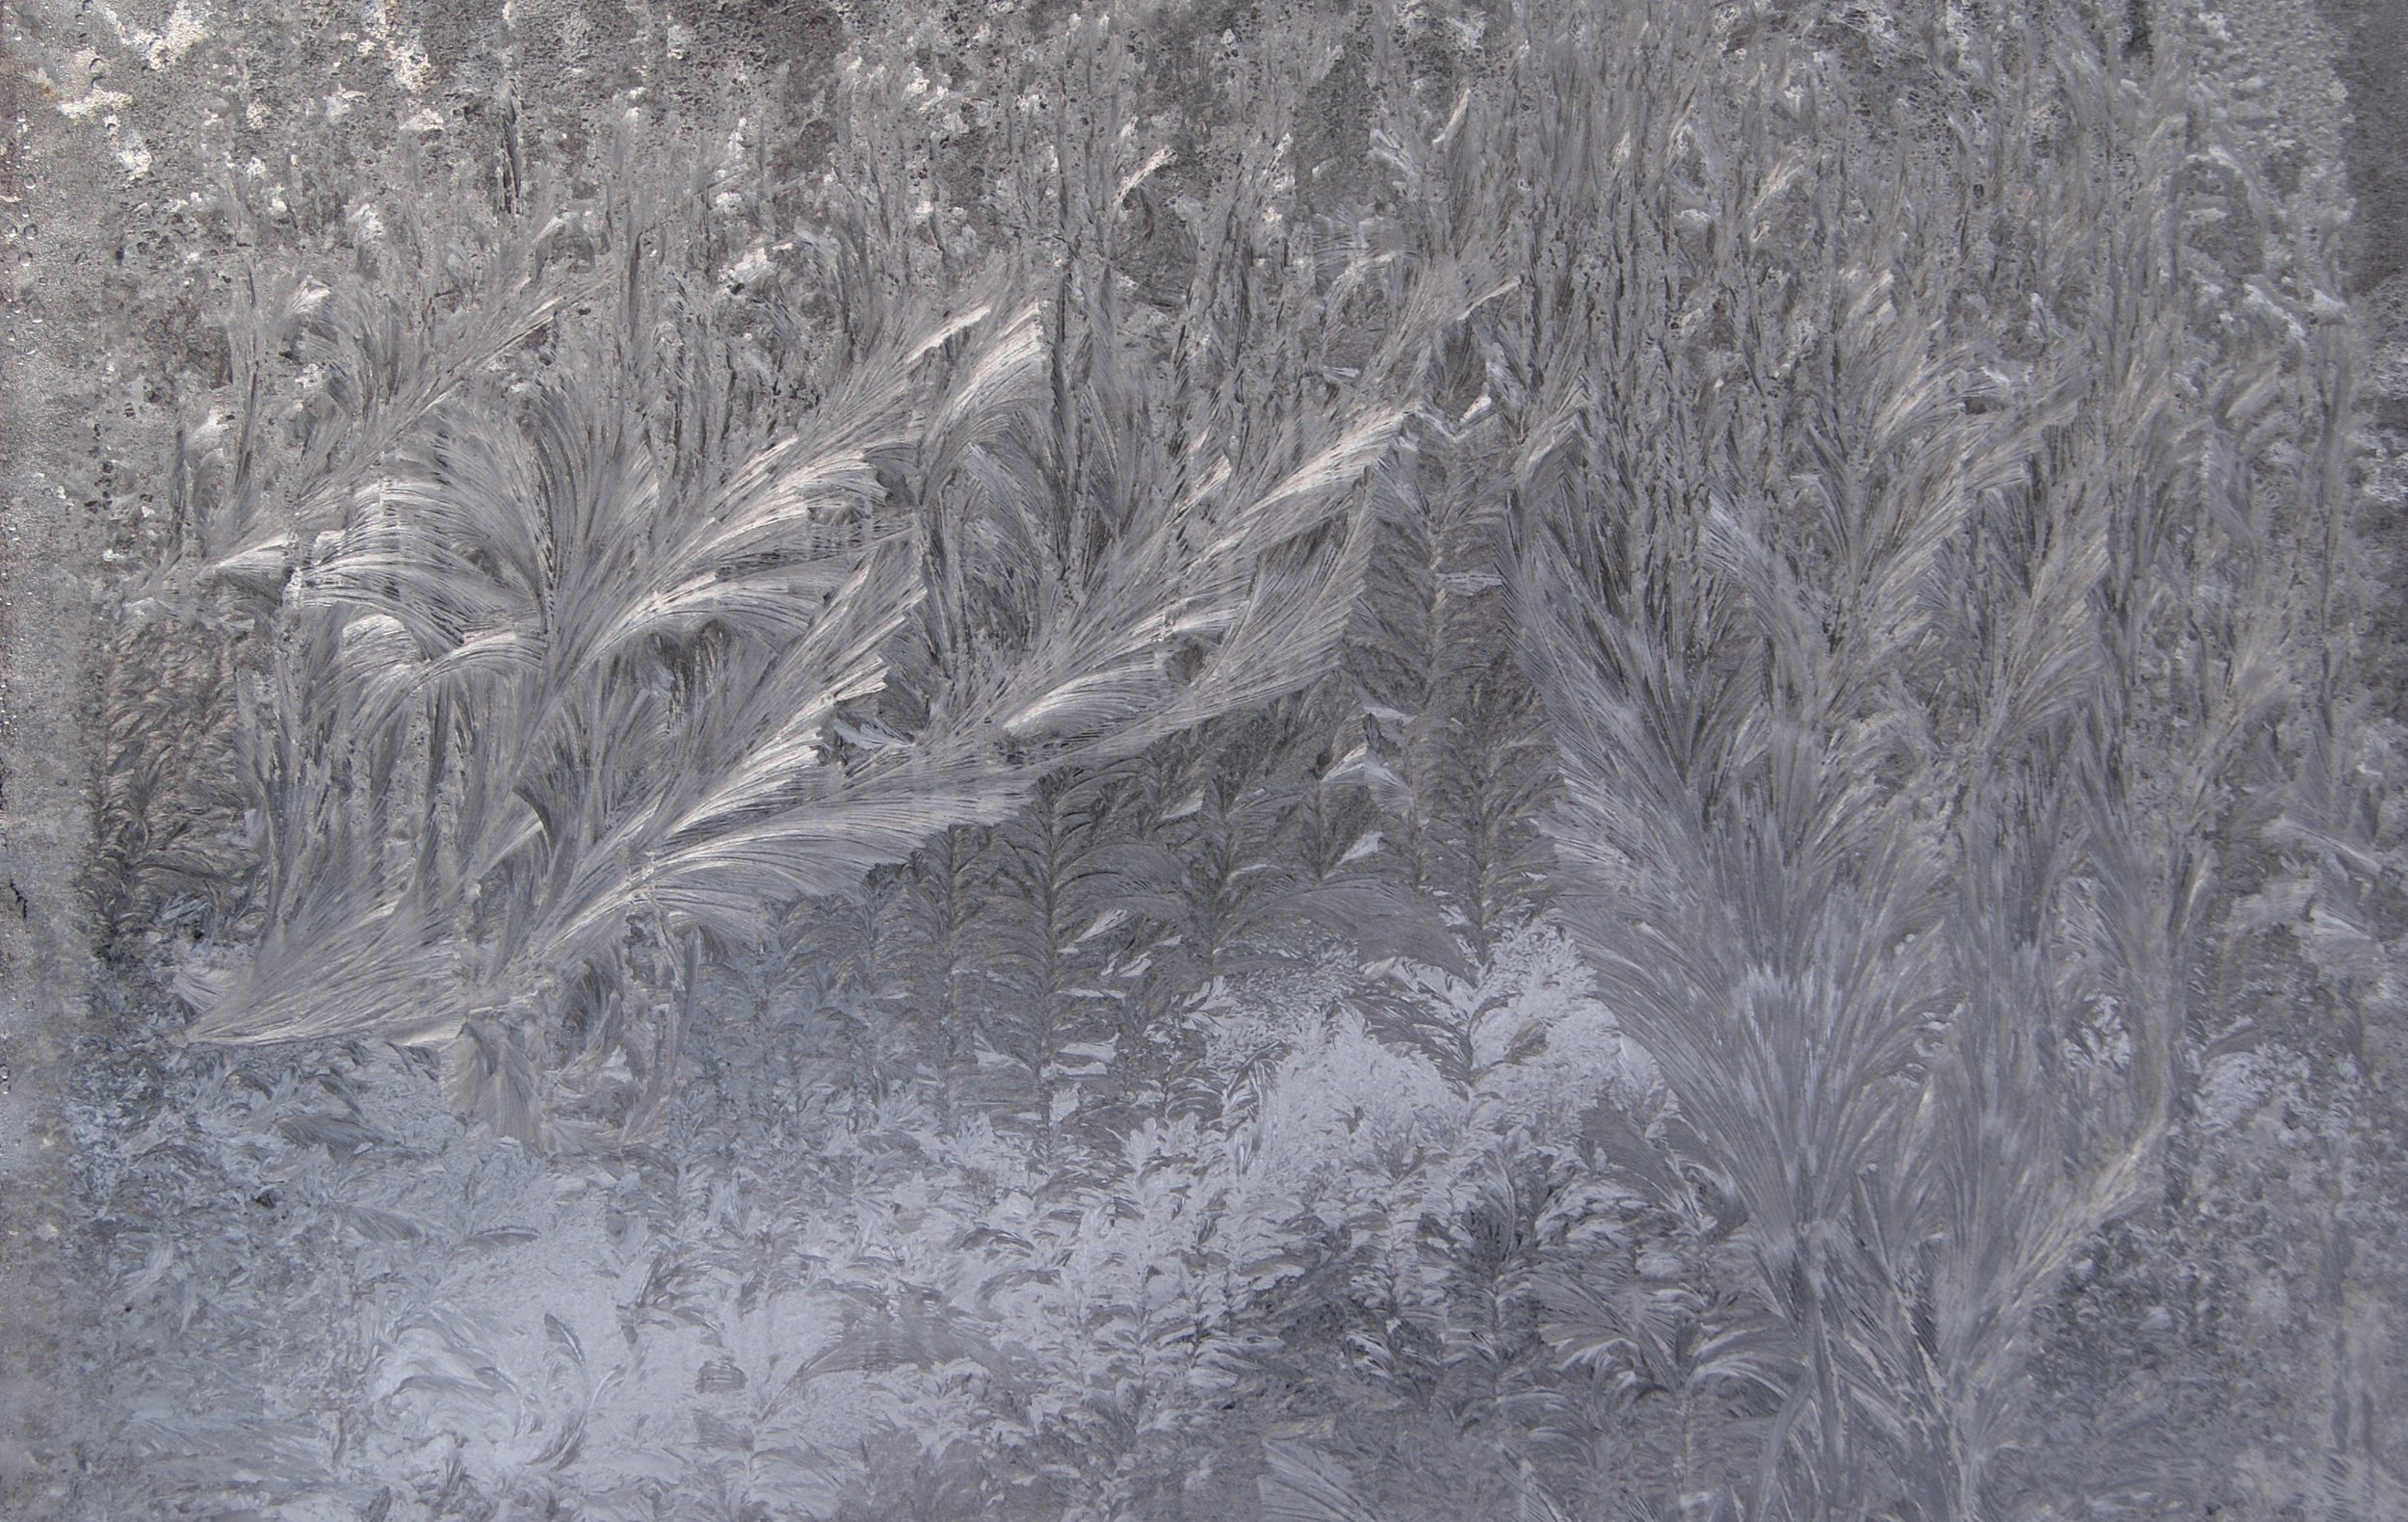 frozen-ice-window.jpg